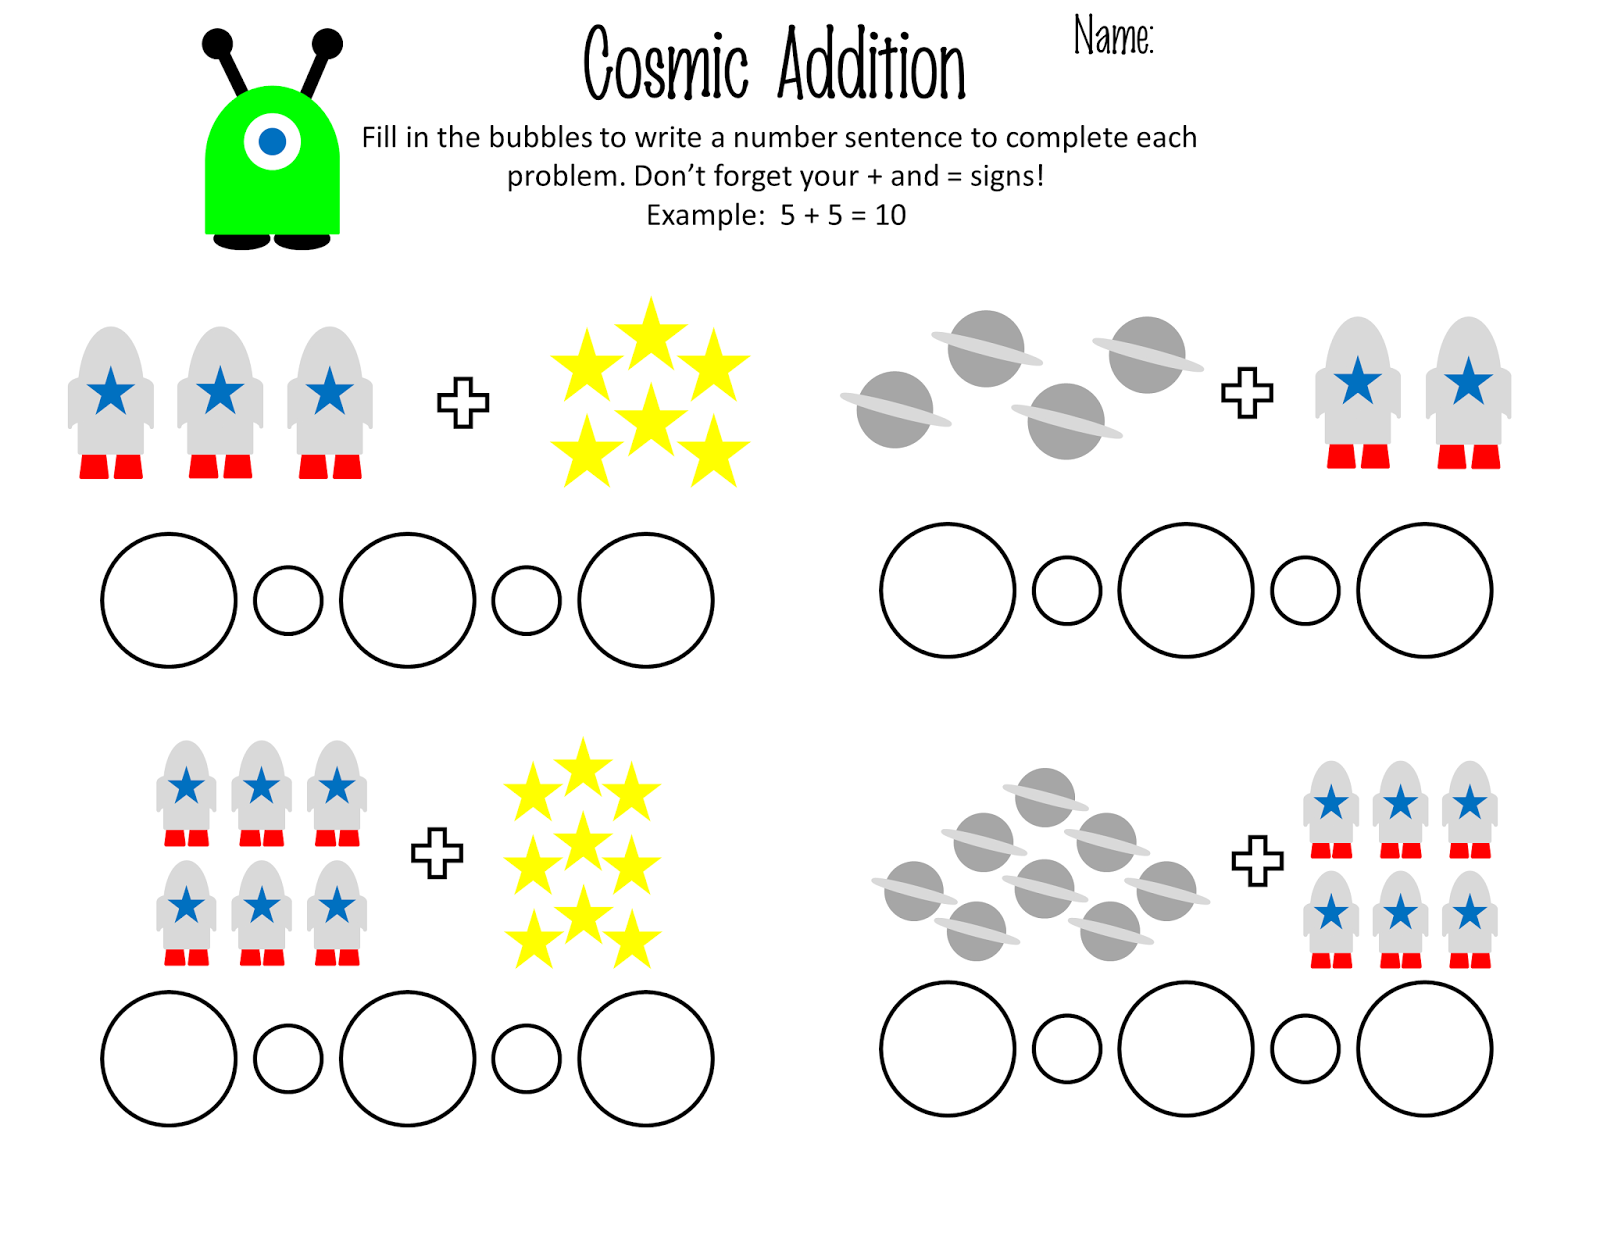 Papercharm 1st Grade Cosmic Addition Practice